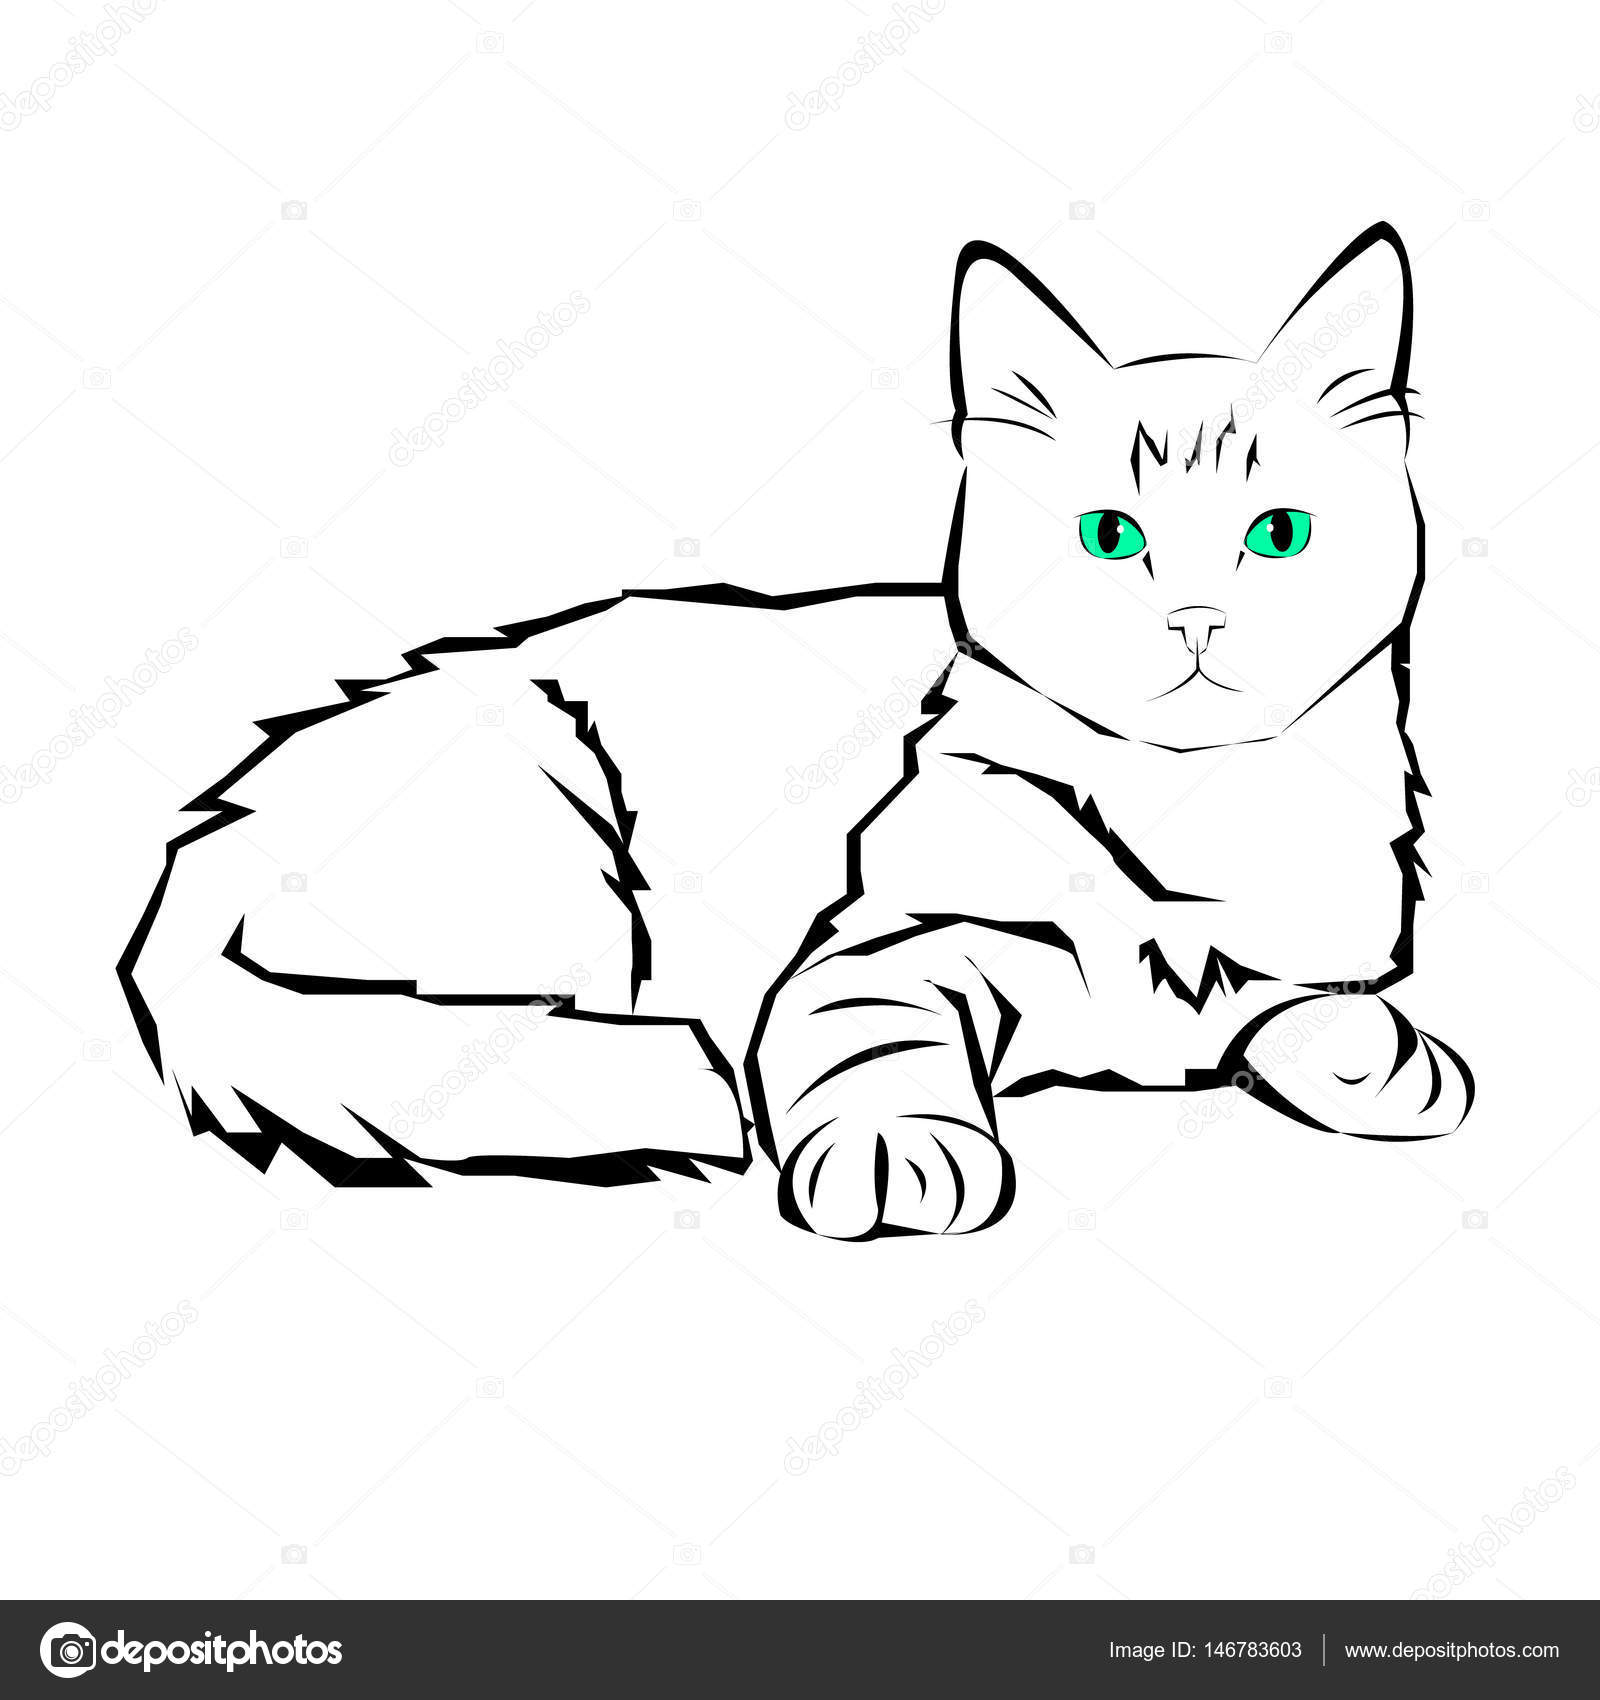 Cat Contour Line Drawing : Cat animal contour drawing creative blue image